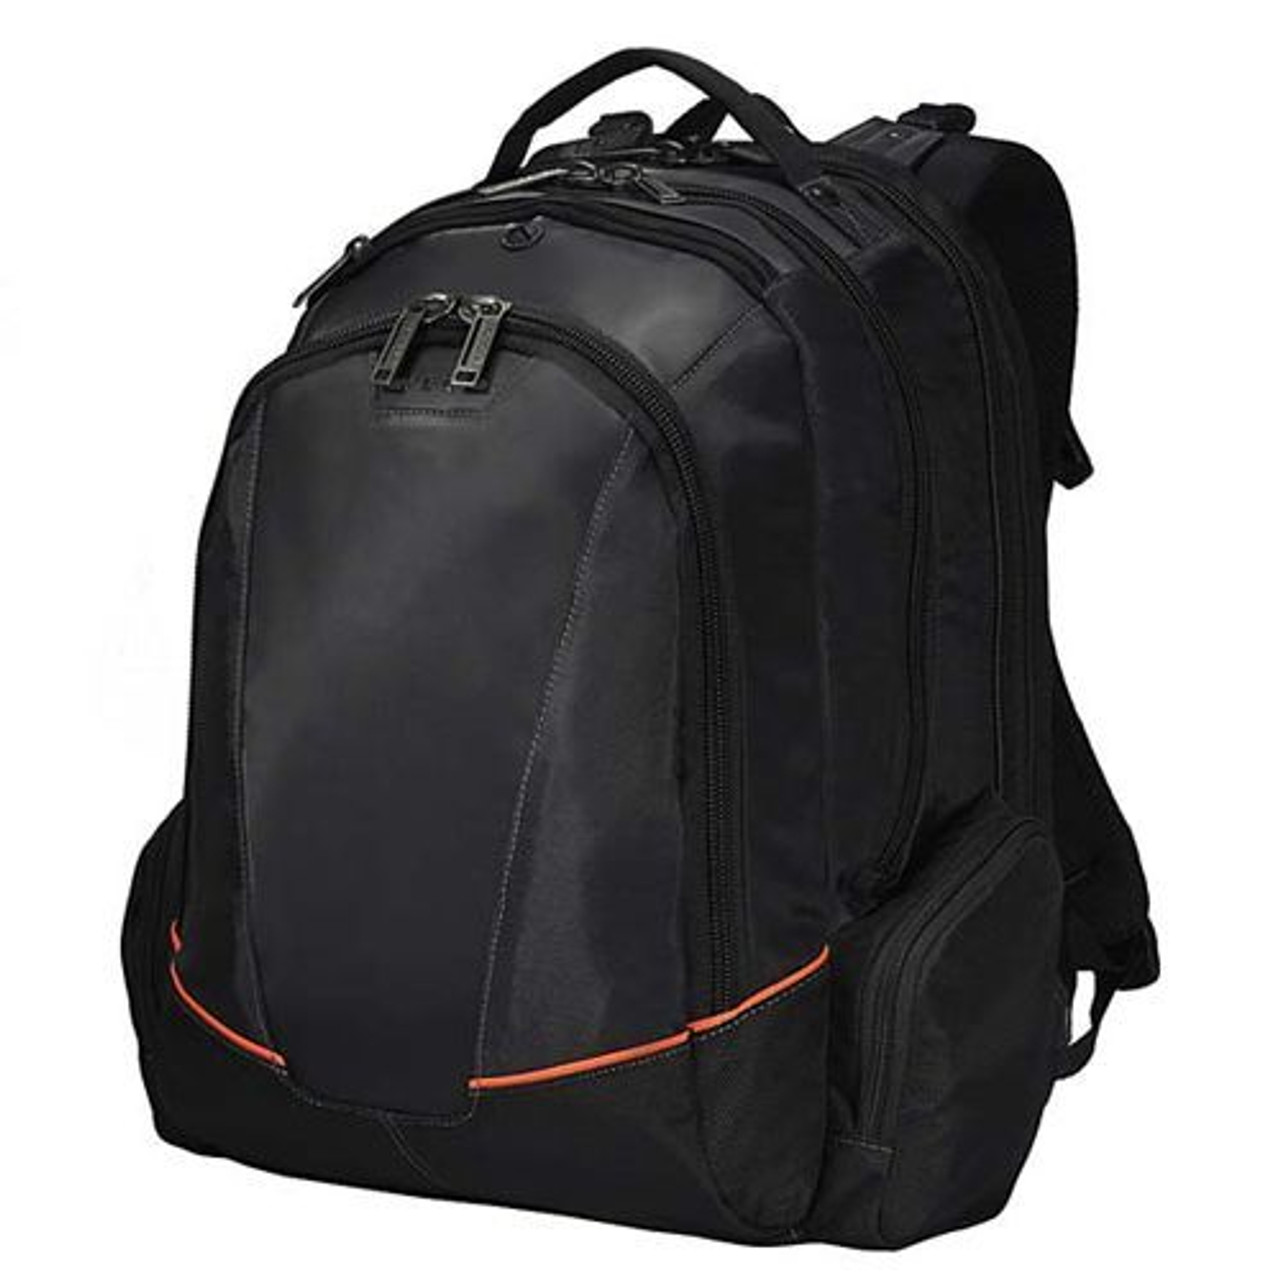 Image for Everki 16in Flight Backpack, Checkpoint Friendly CX Computer Superstore